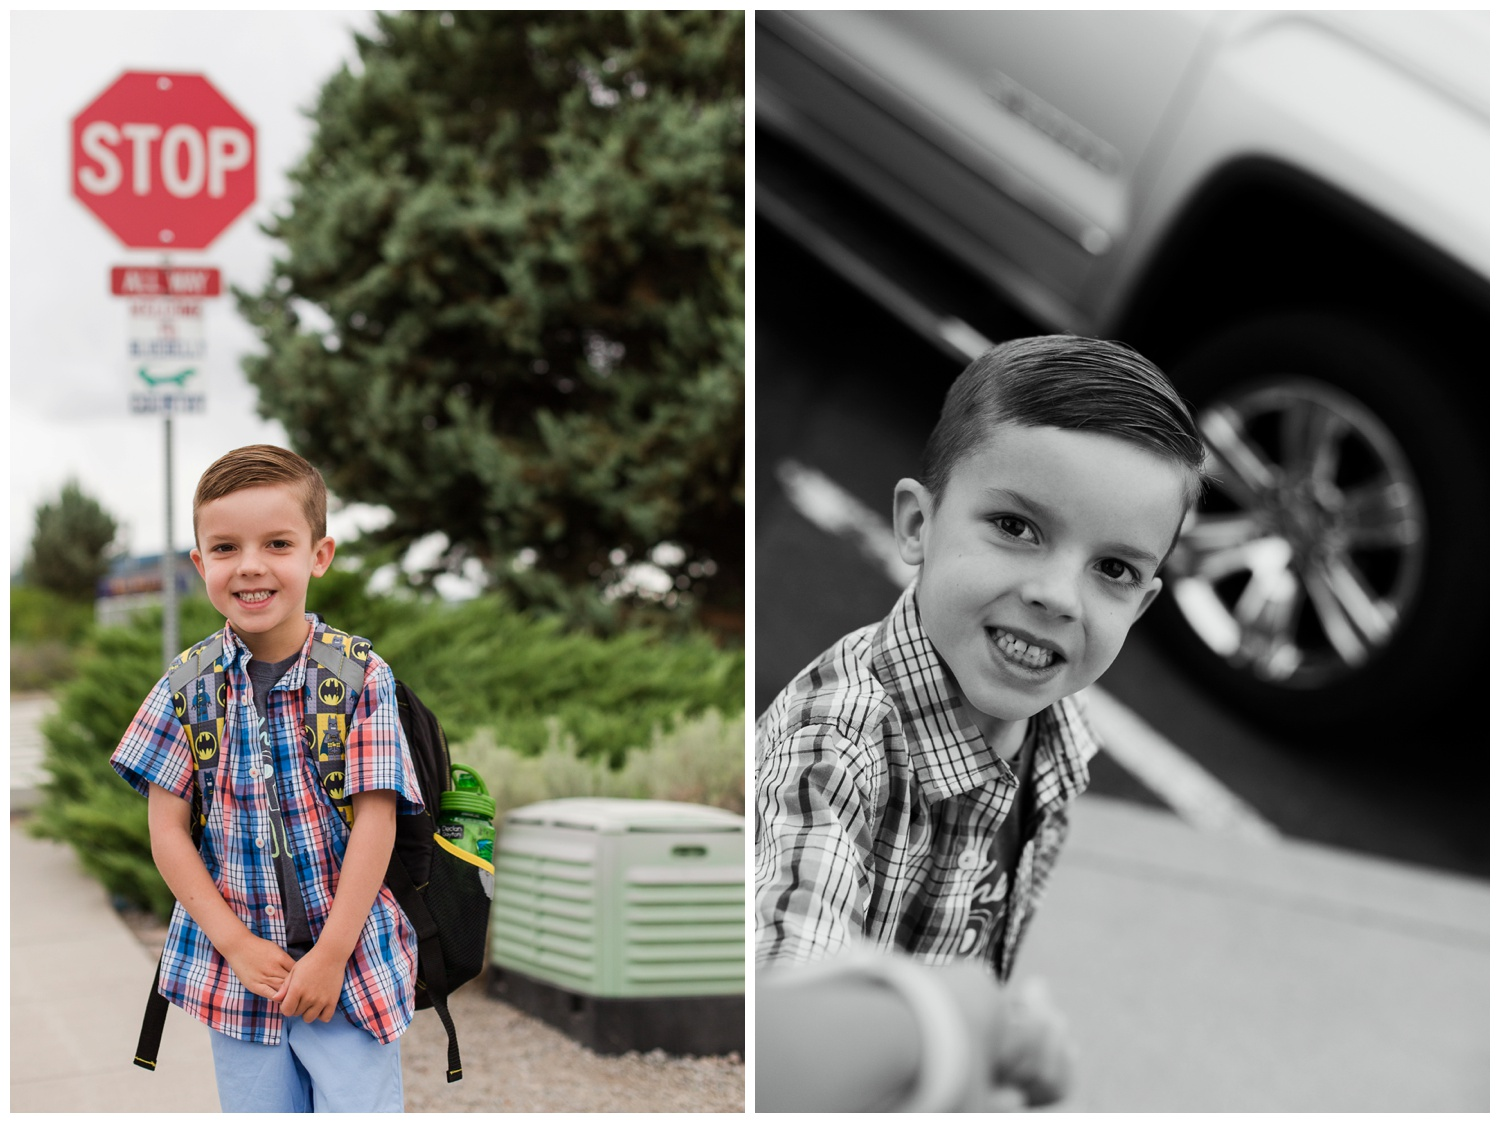 Here we are on our walk up to the school on that big first day... in the second picture he is holding on to my hand. I LOVE this picture! Look at his sweet face! He was being brave and smiling but you can see the nerves too! Isn't it amazing what a photo can capture... brings that memory right back!